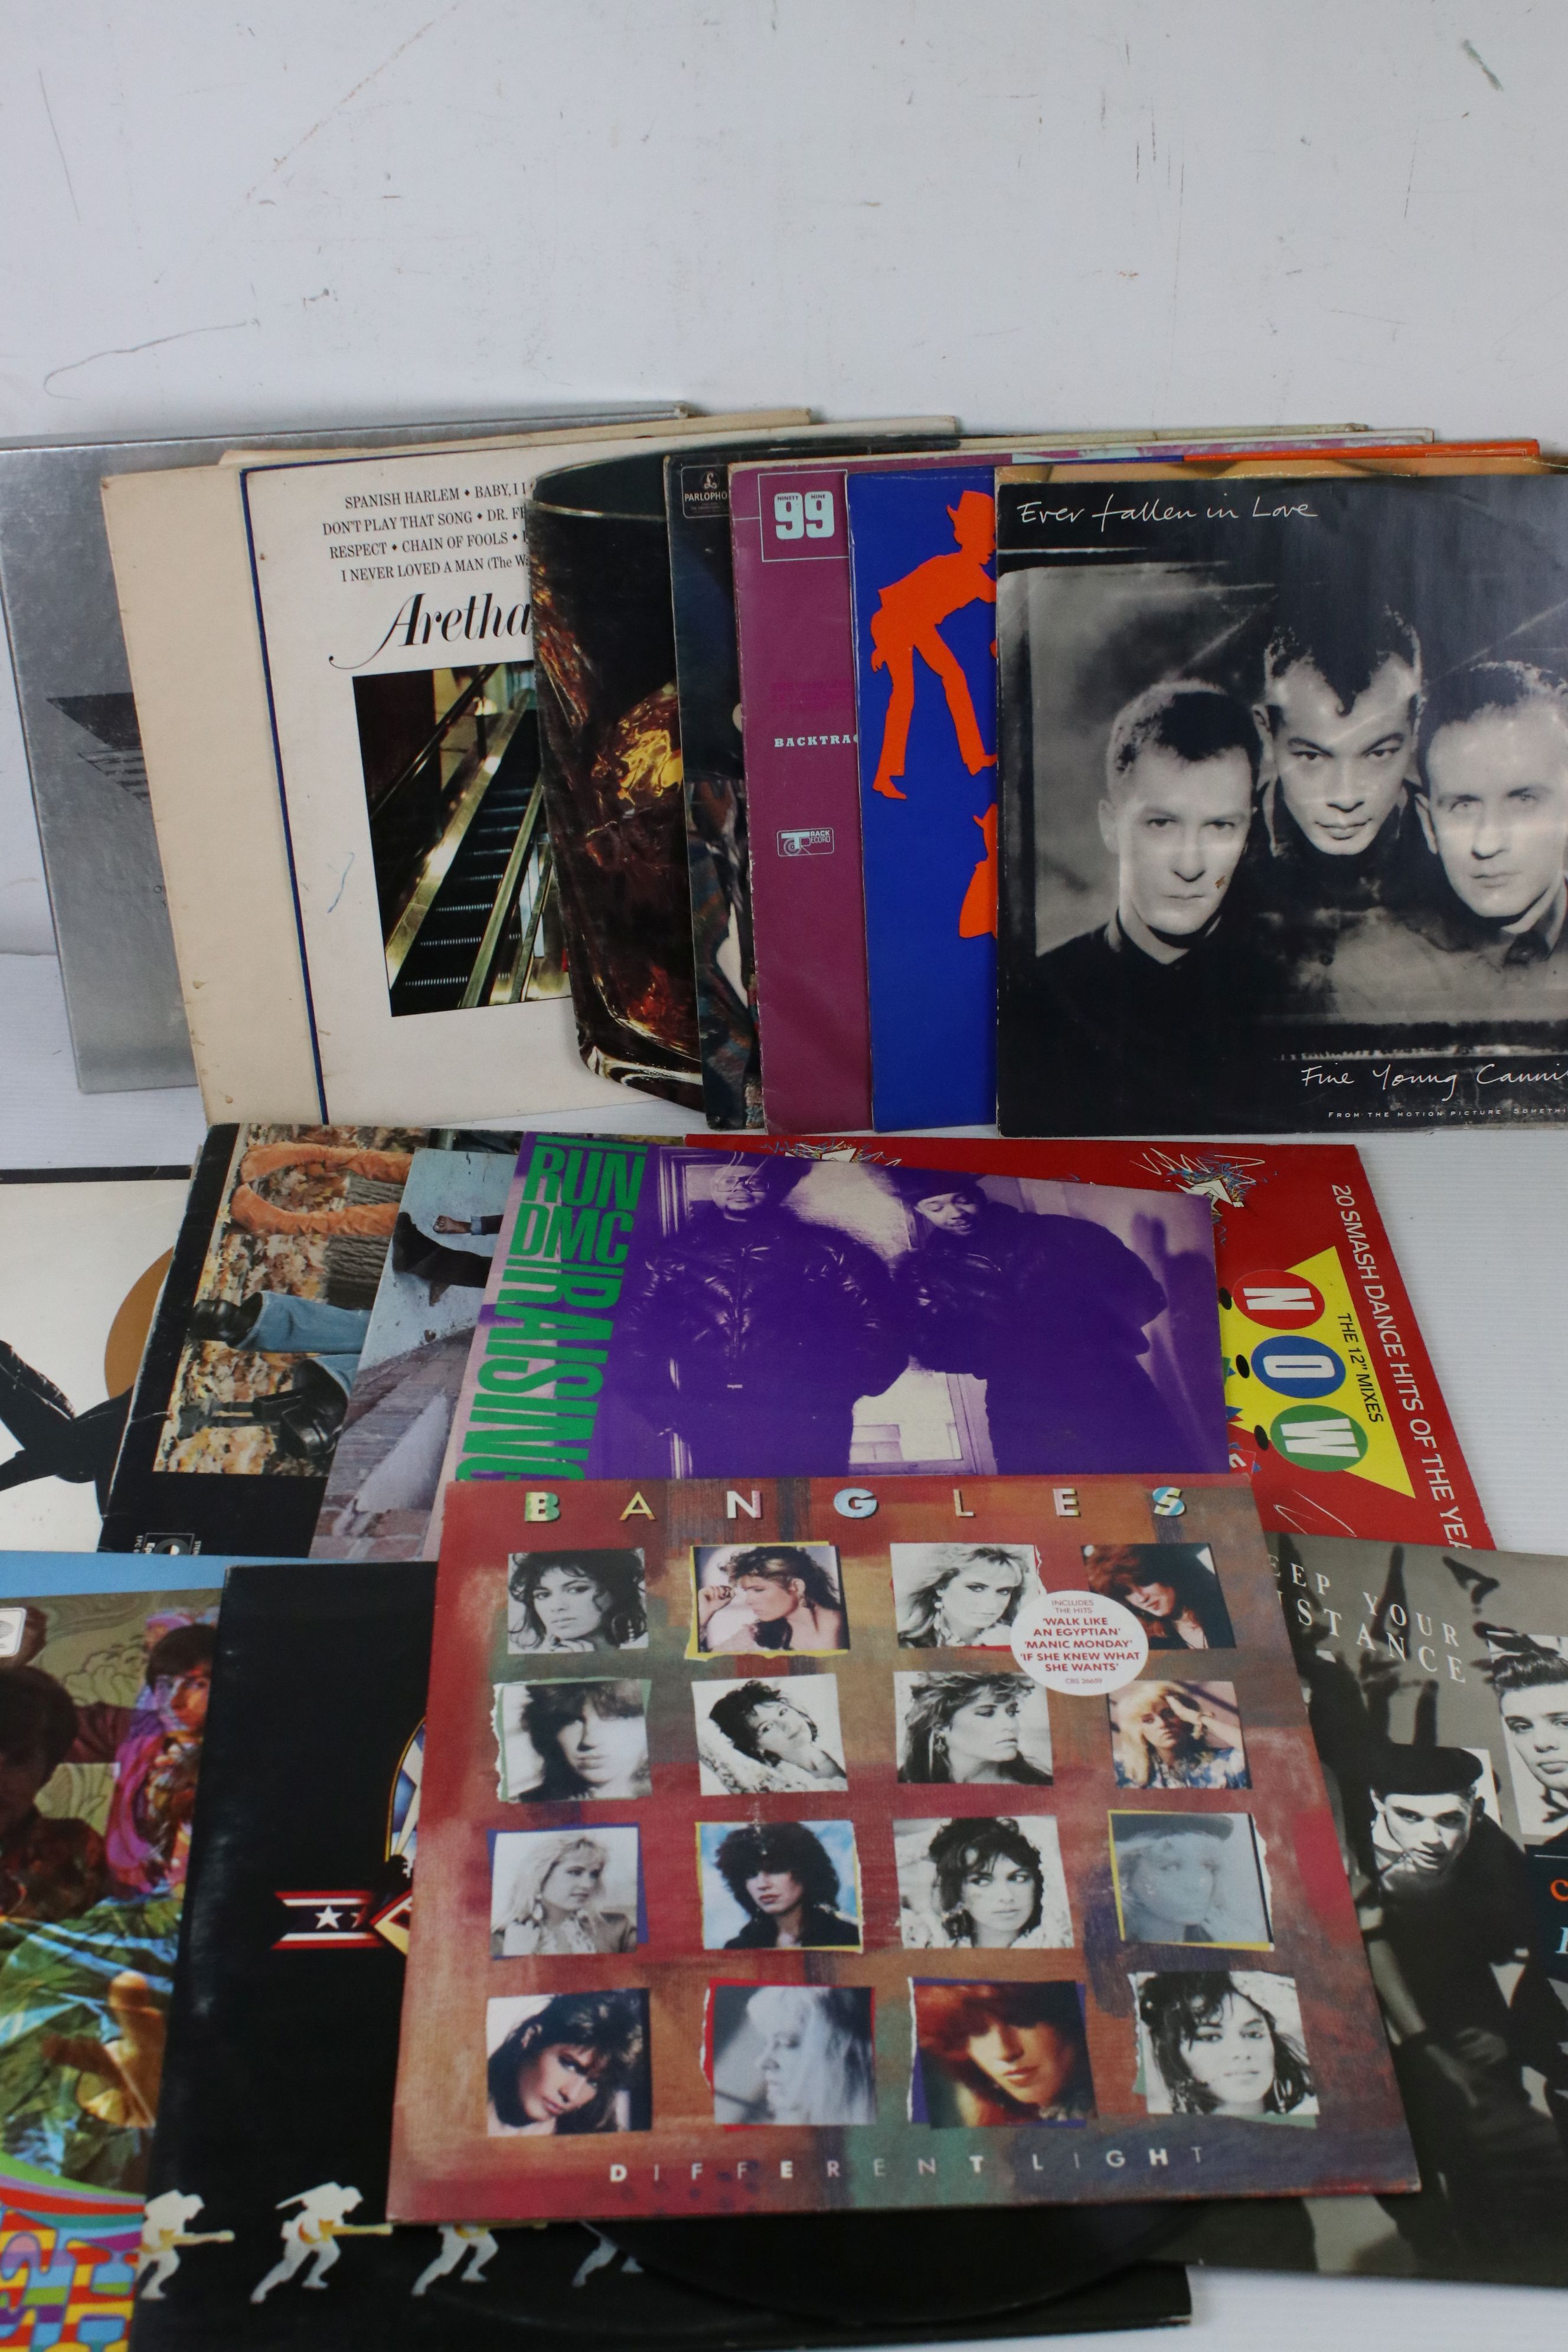 Vinyl - 23 LPs to include compilations such as Backtrack 1 on Track Records, Fifty Years of Film box